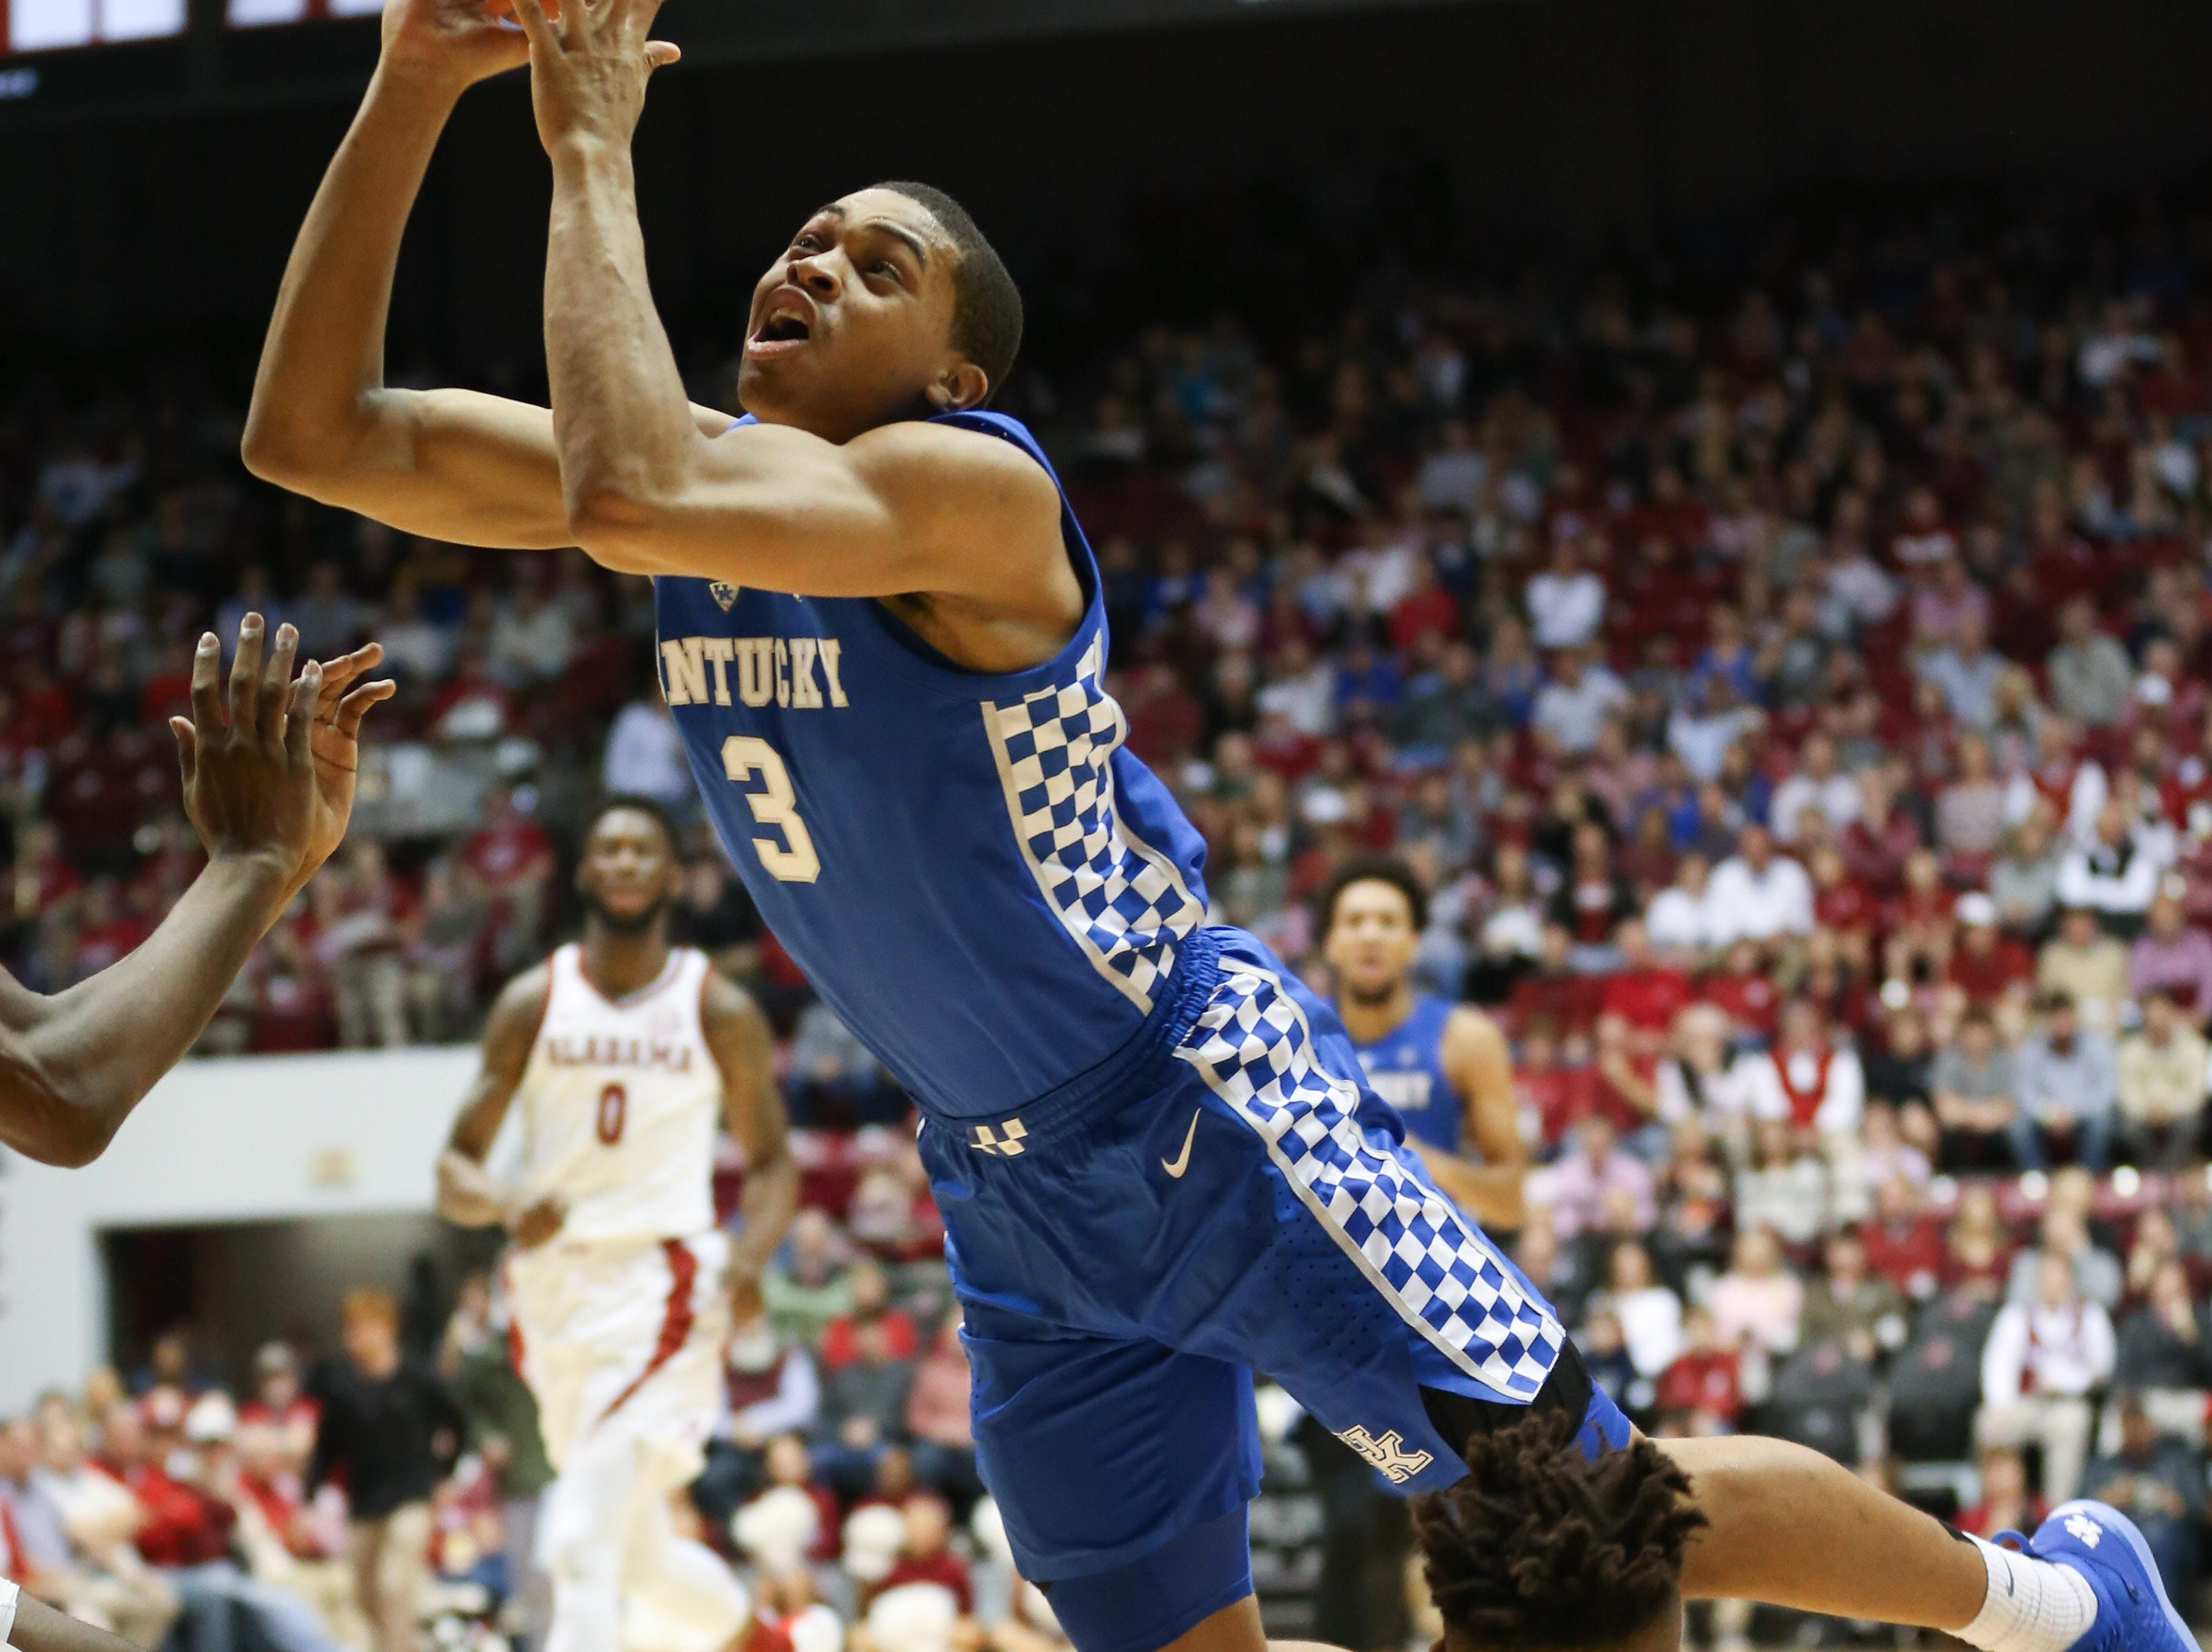 Jan 5, 2019; Tuscaloosa, AL, USA; Kentucky Wildcats guard Keldon Johnson (3) goes to the basket against Alabama Crimson Tide guard Avery Johnson Jr. (5)  during the first half at Coleman Coliseum. Mandatory Credit: Marvin Gentry-USA TODAY Sports